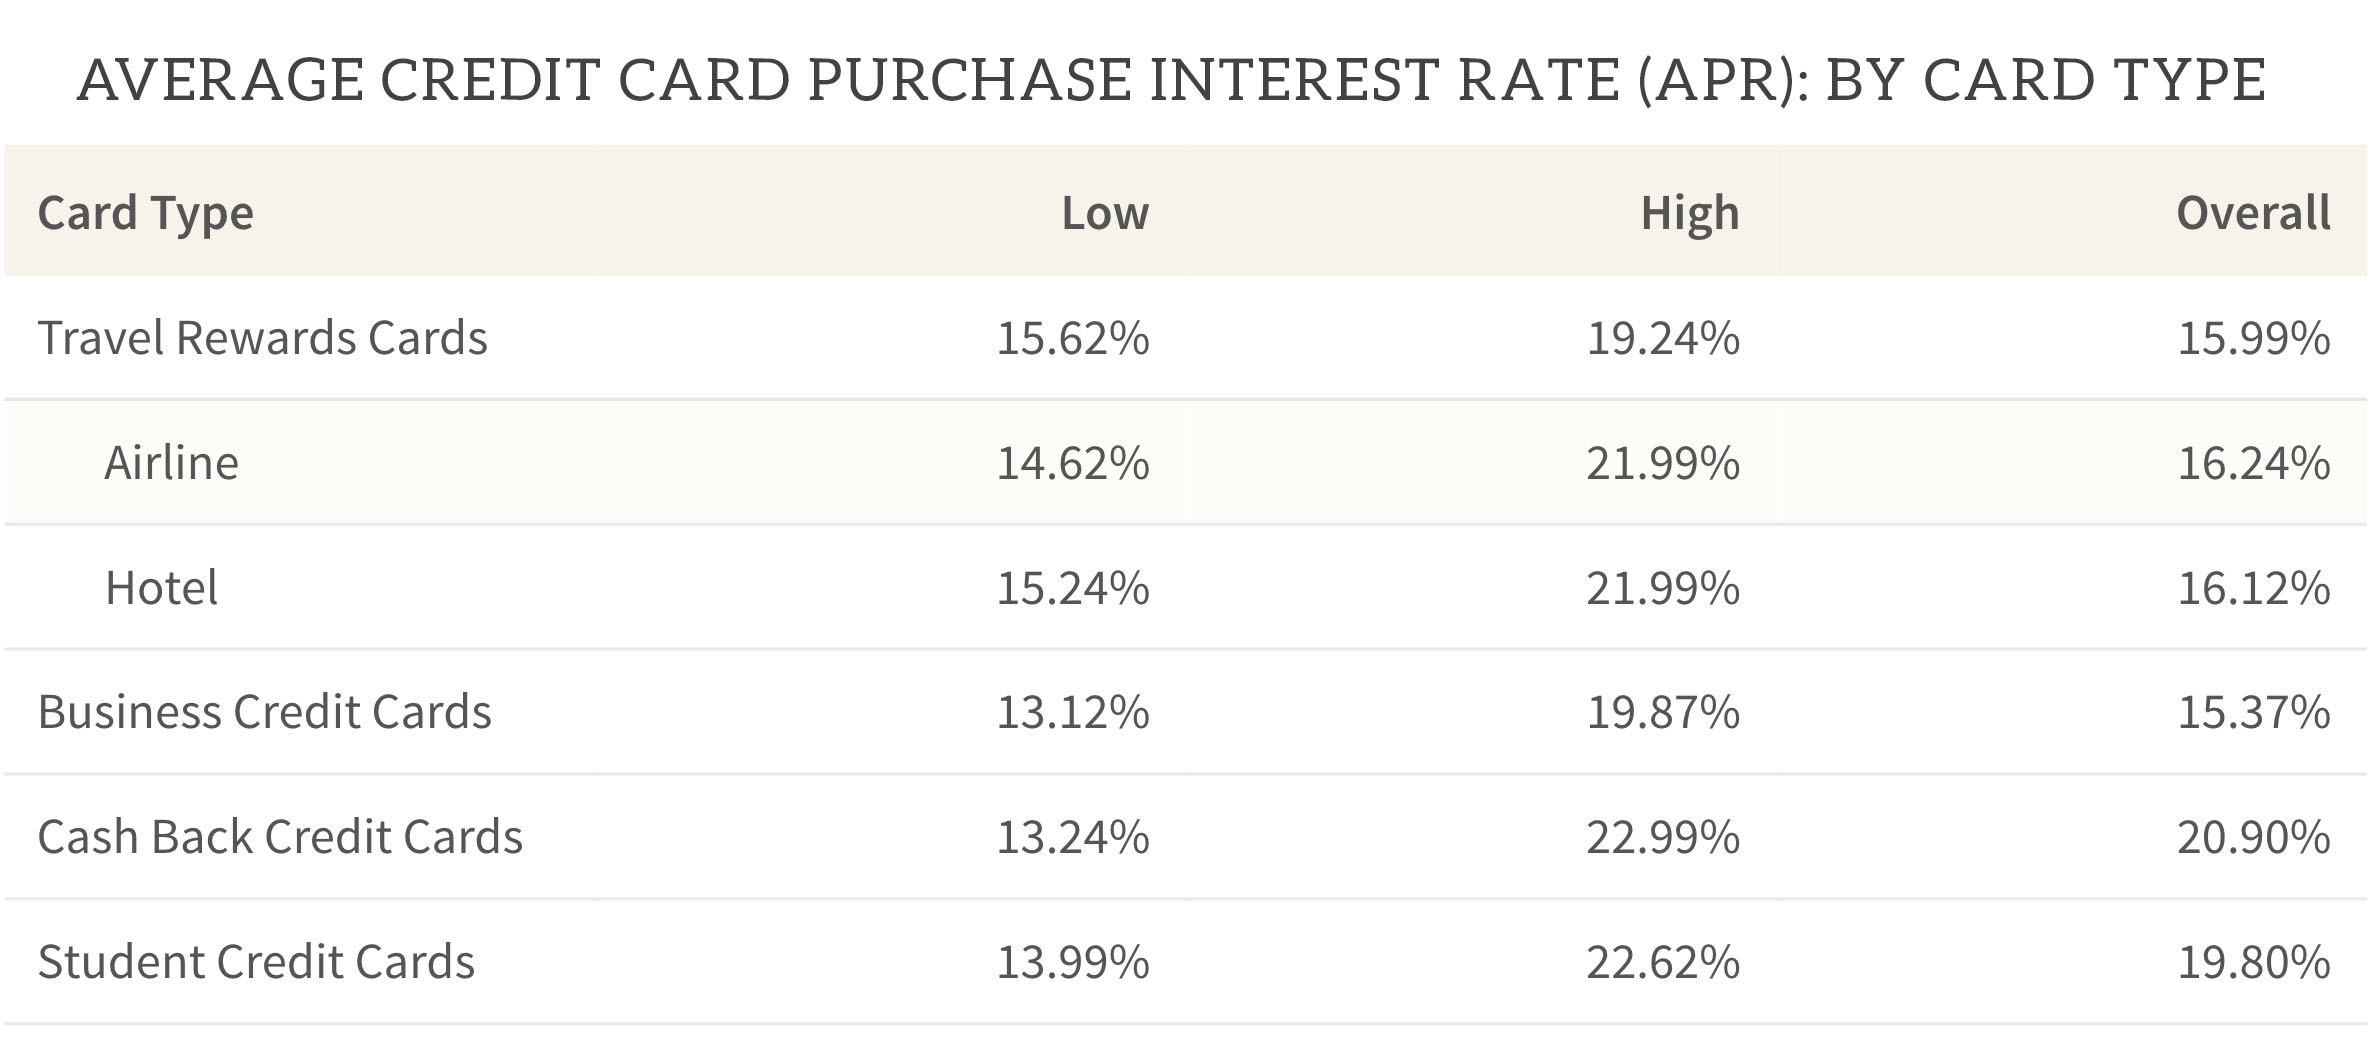 avg credit card purchase interest rate